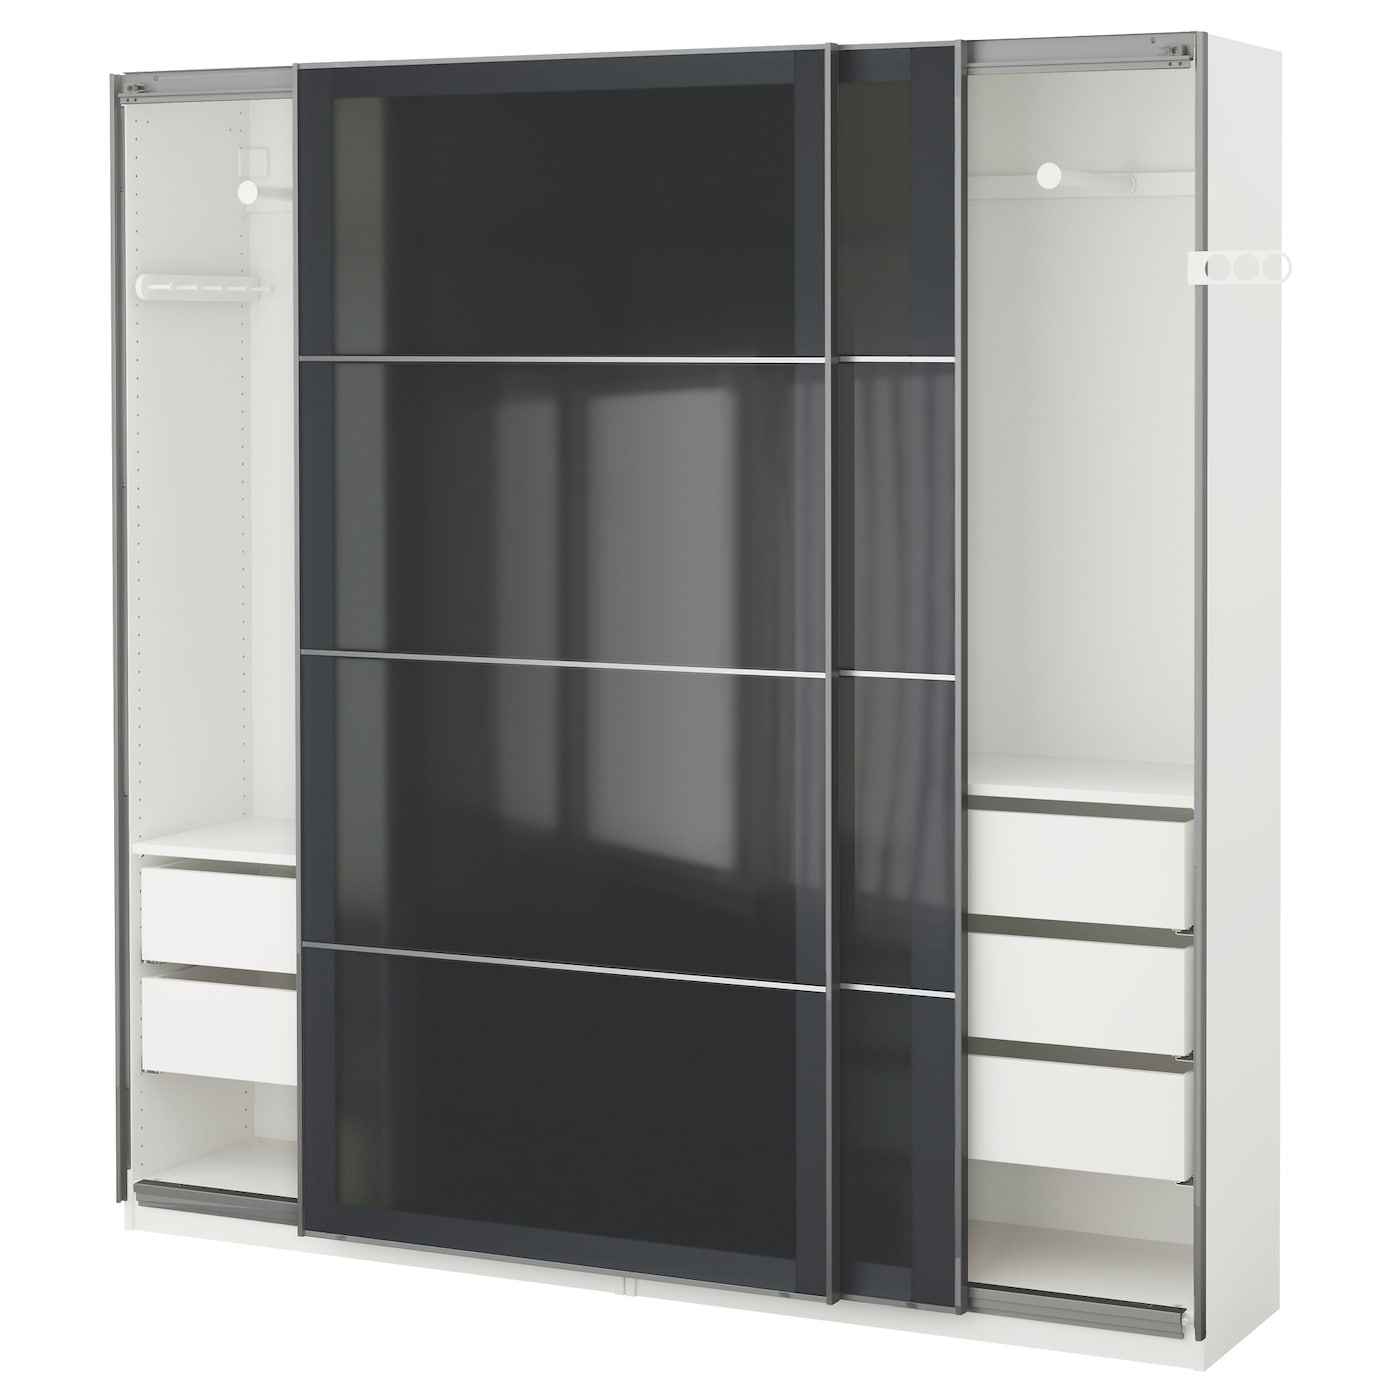 pax wardrobe white uggdal grey glass 200x44x201 cm ikea